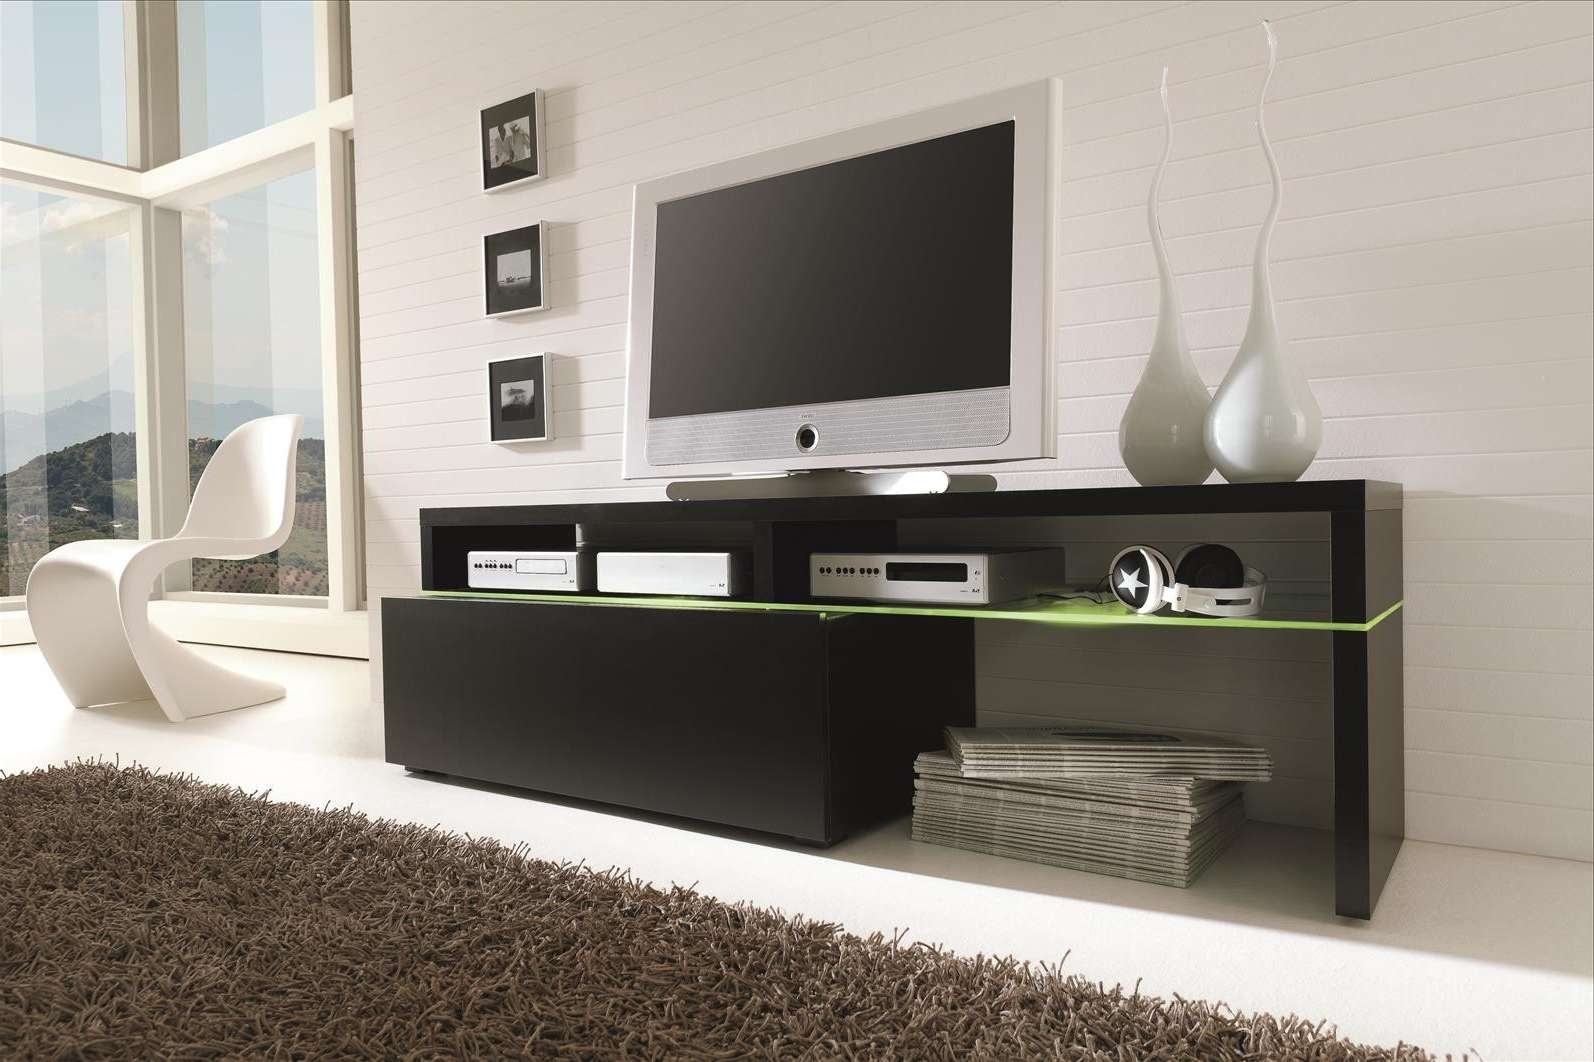 White S Panton Chair Next To Modern Long Black Media Cabinet And With Regard To Long White Tv Cabinets (View 17 of 20)